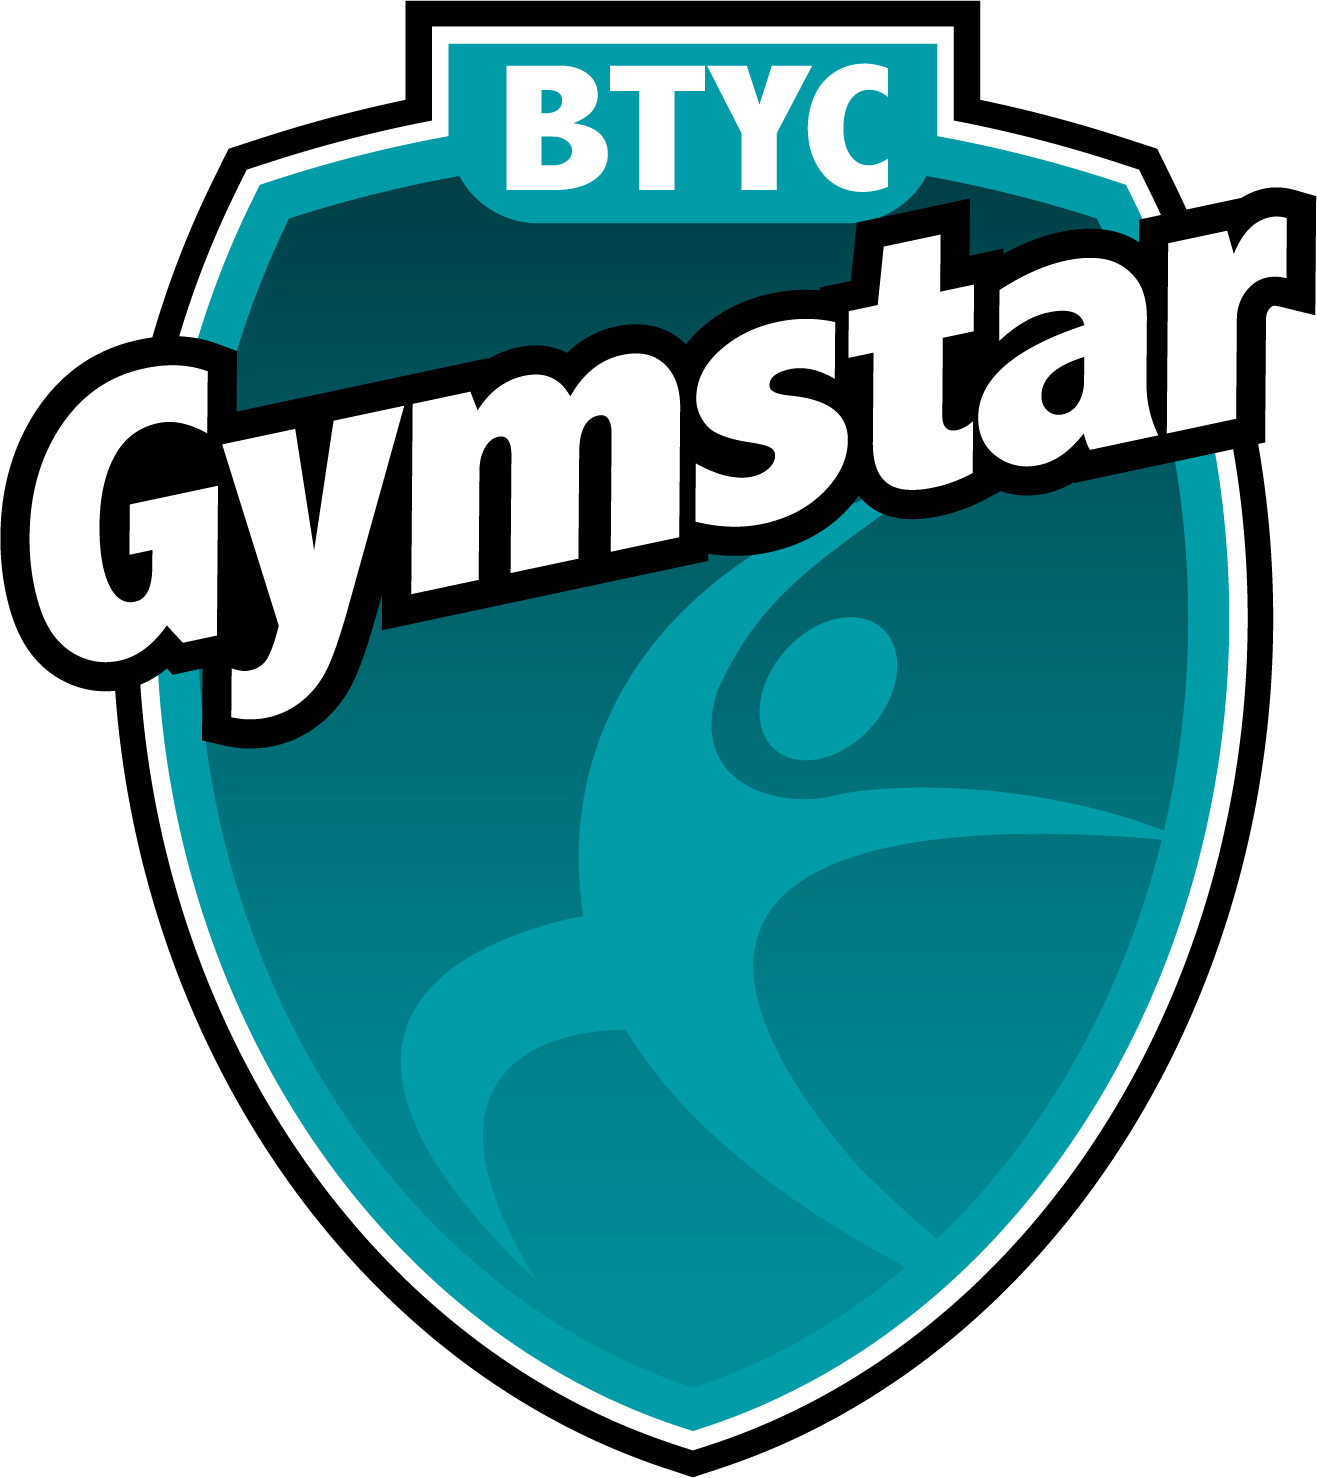 gymstar gymnastics at btyc